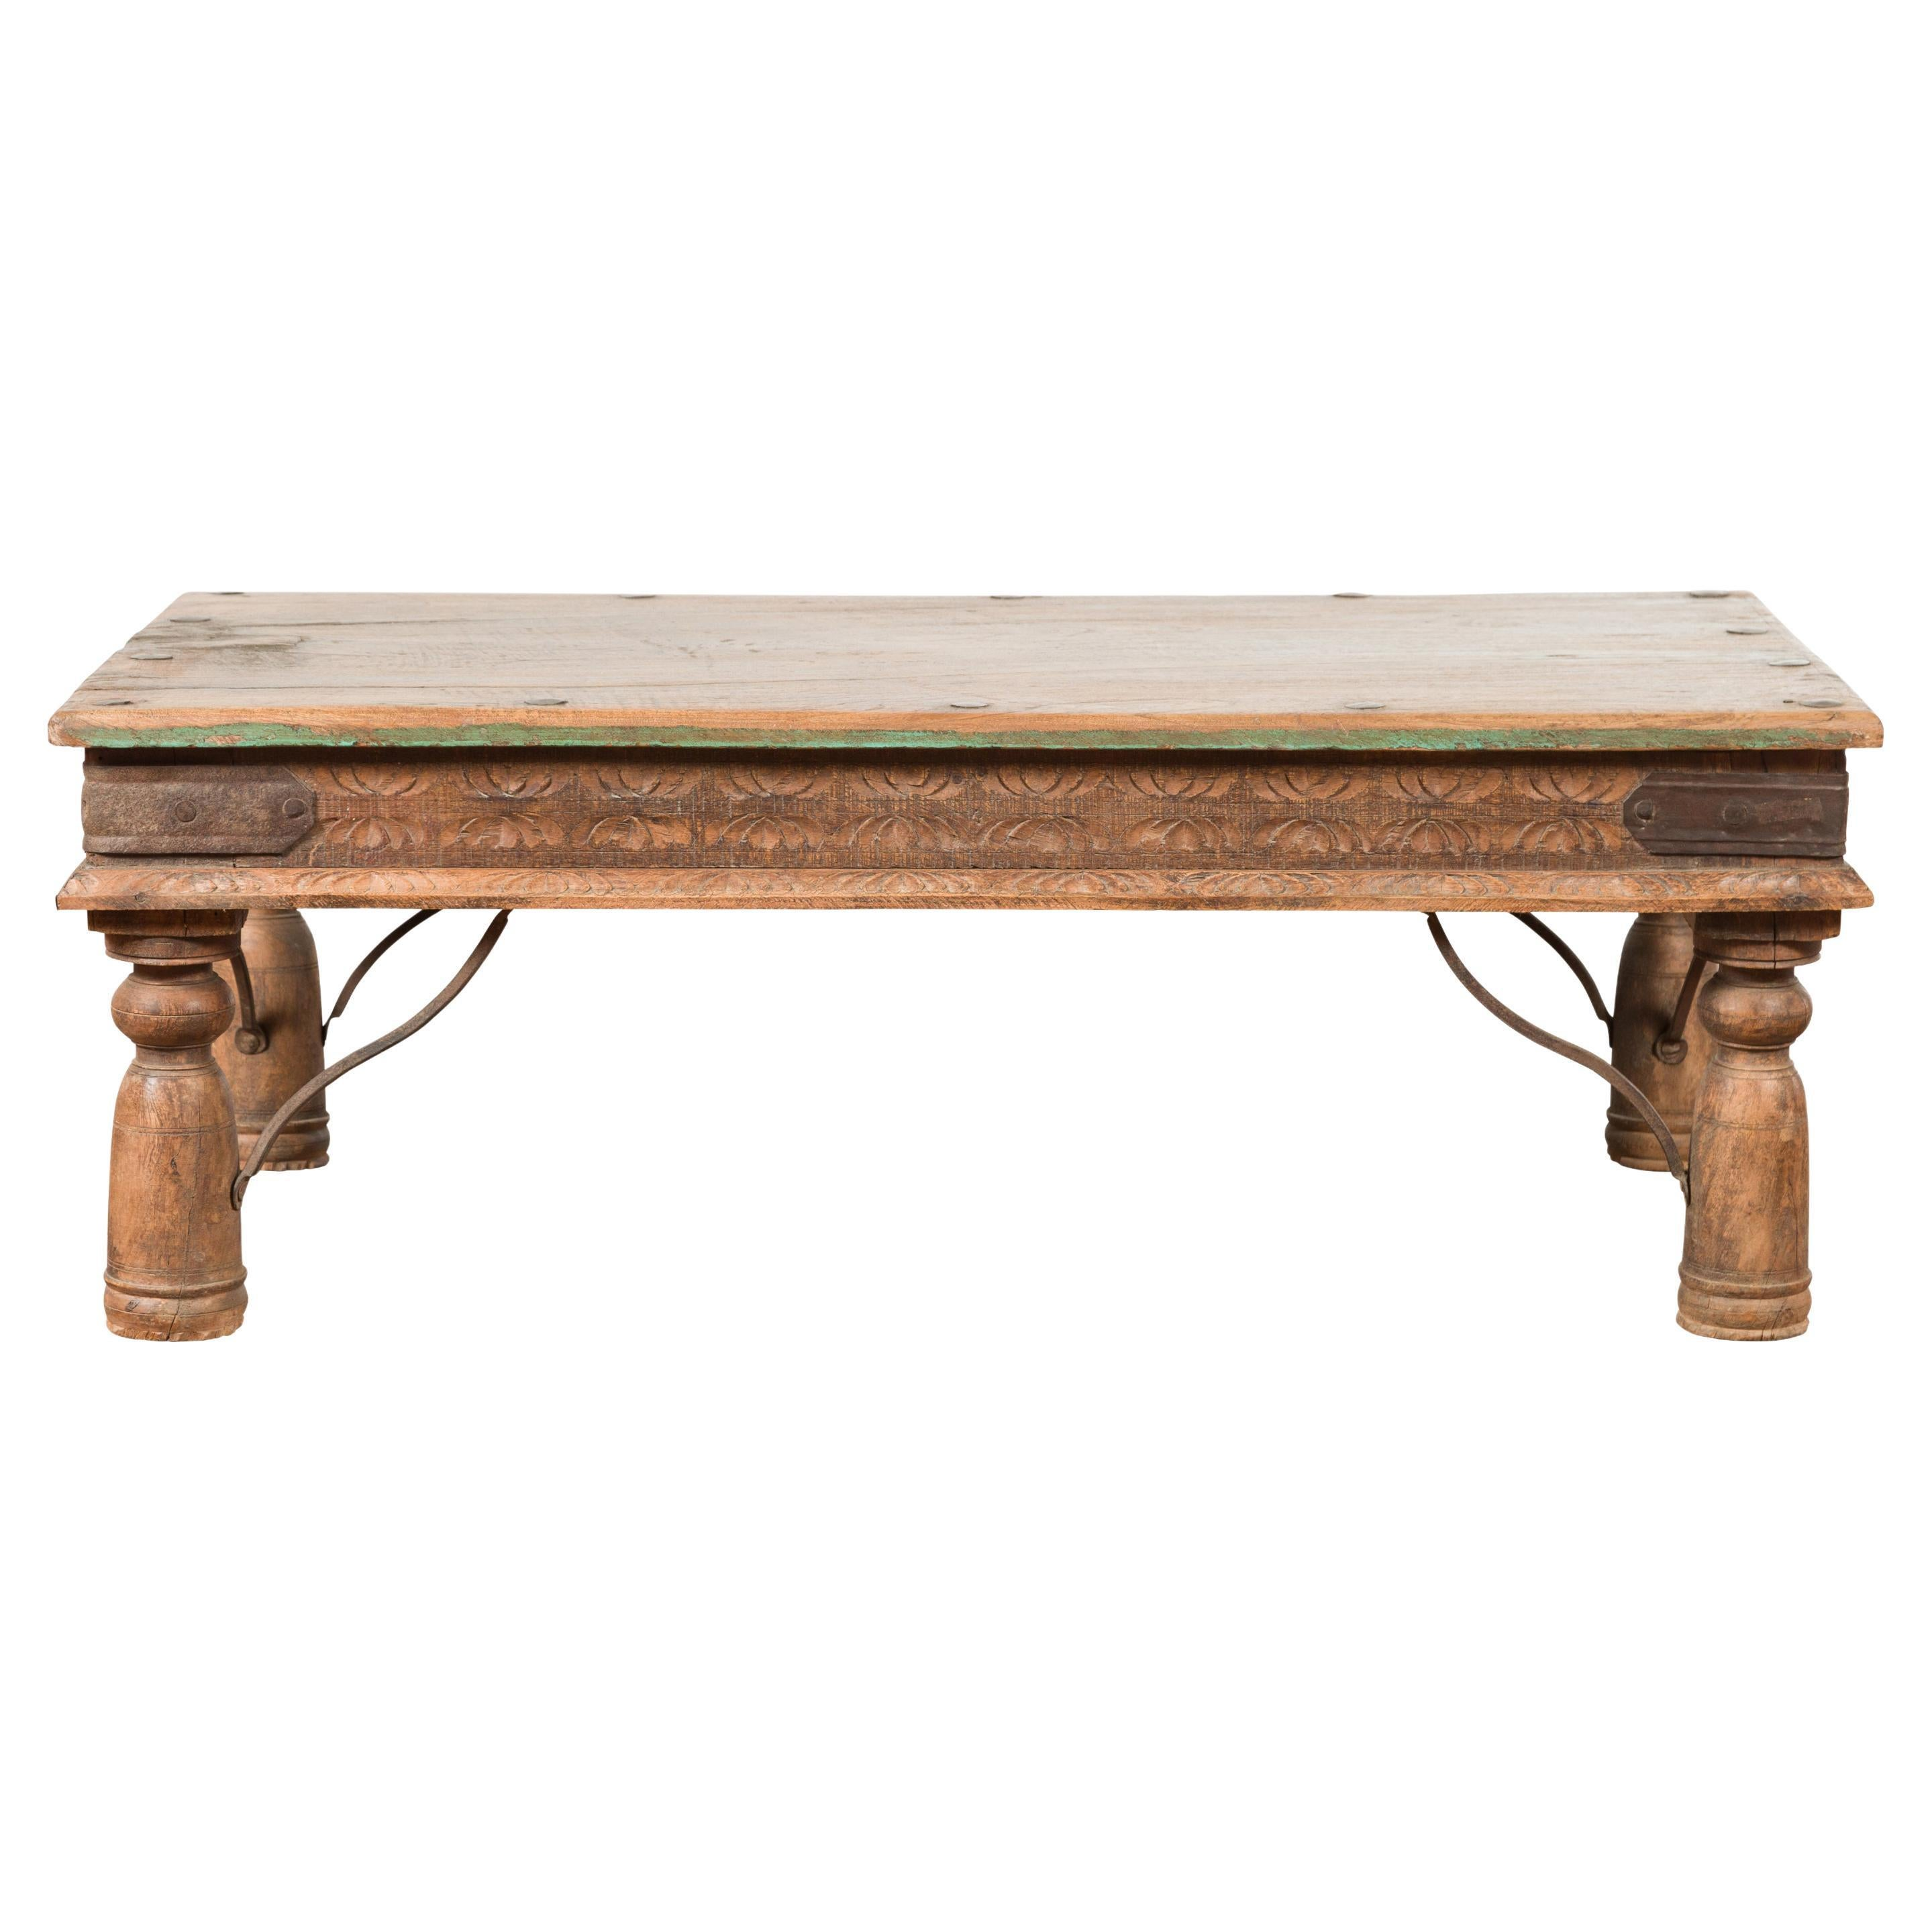 19th Century Indian Rustic Coffee Table with Iron Accents and Carved Apron